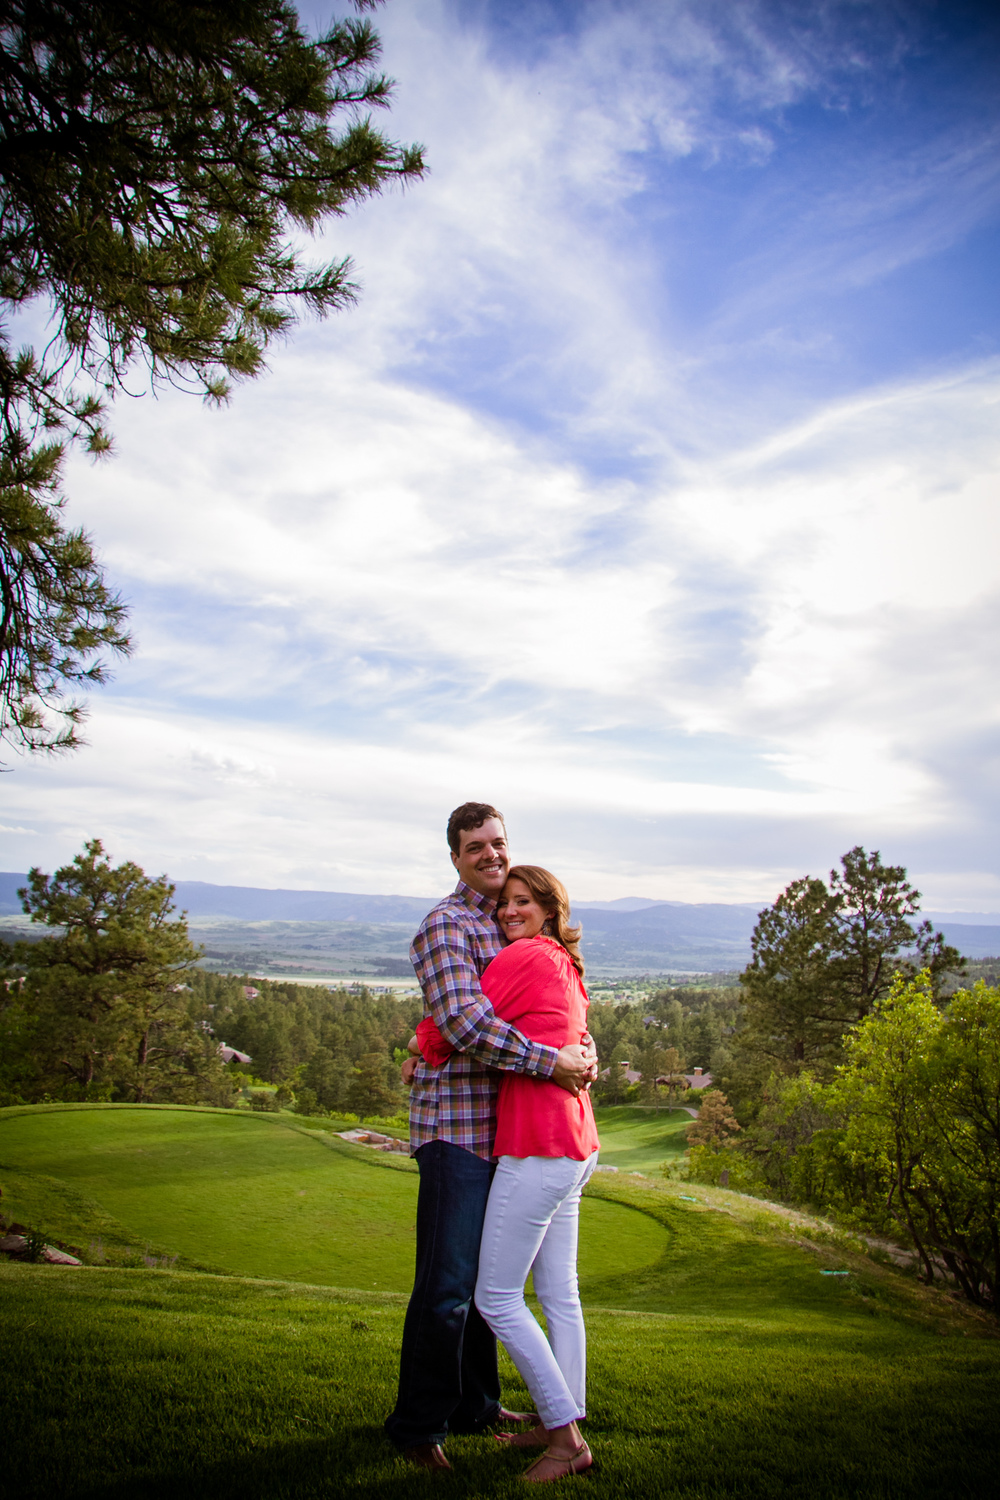 Castle_Pines_Colorado'_Engagement_Photos_008.JPG